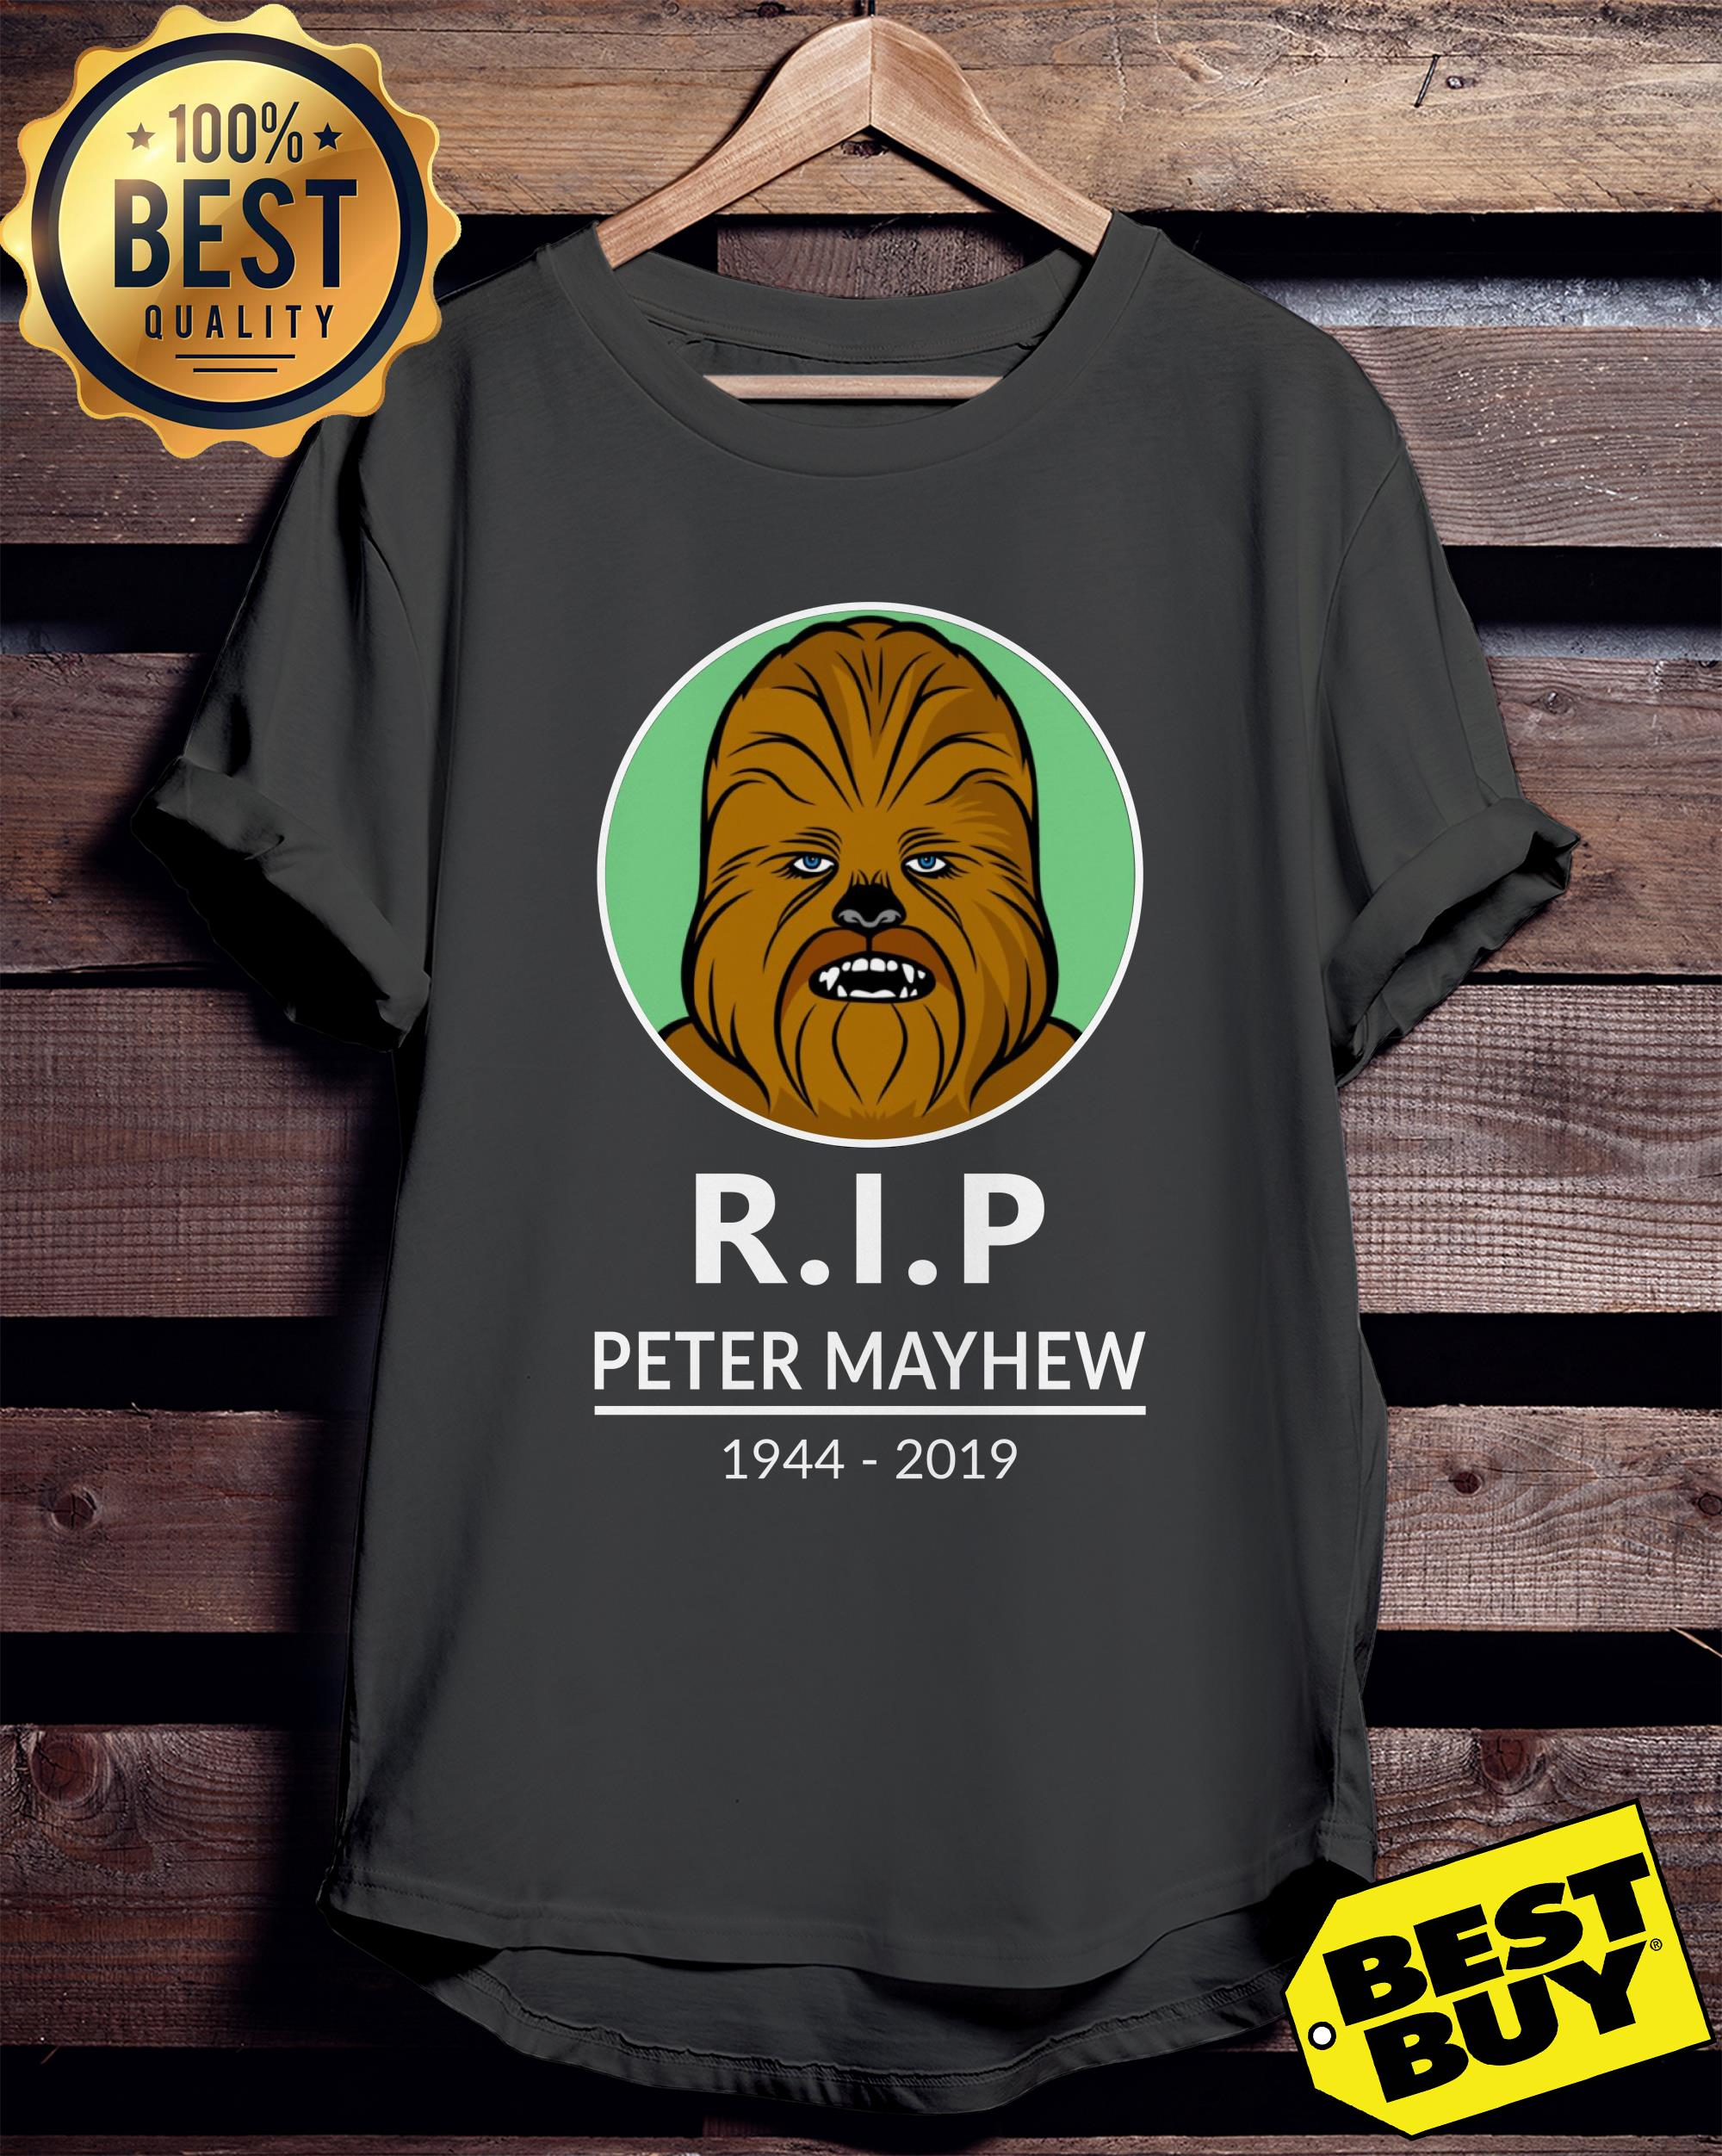 R.I.P Peter Mayhew 1944-2019 Chewbacca Star War ladies tee